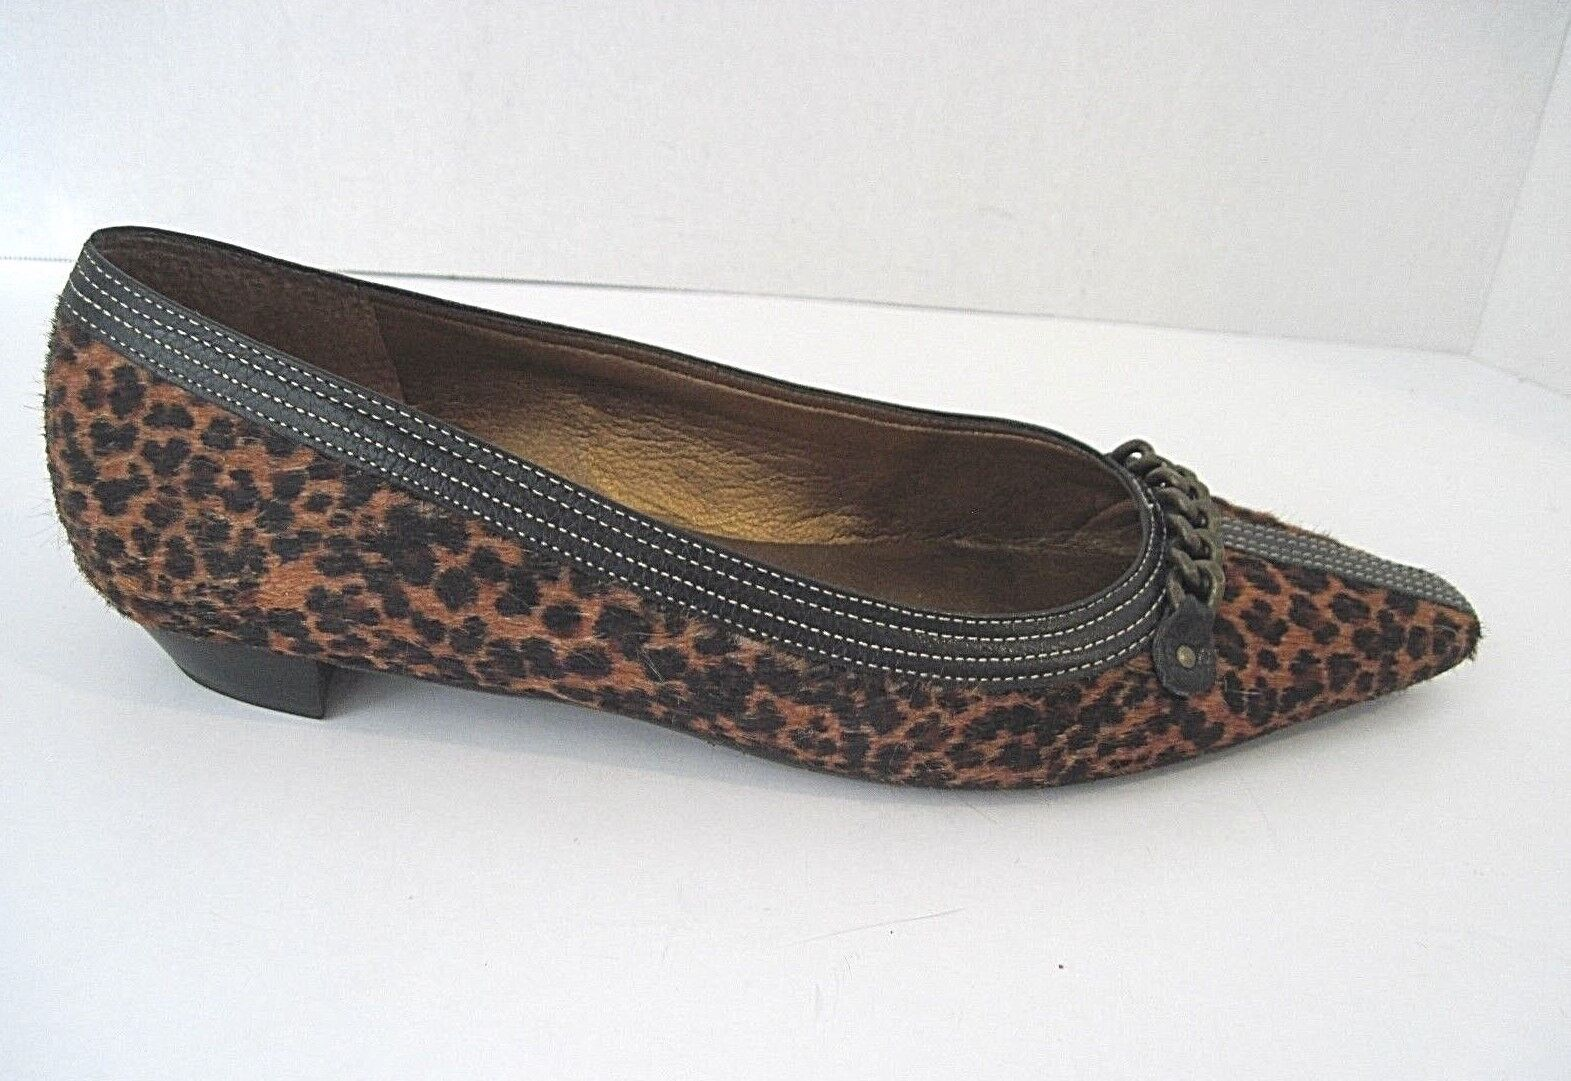 TALBOTS Leopard Animal Print Pony Hair Pointed Toe Flats Schuhes Größe 8 1/2 B